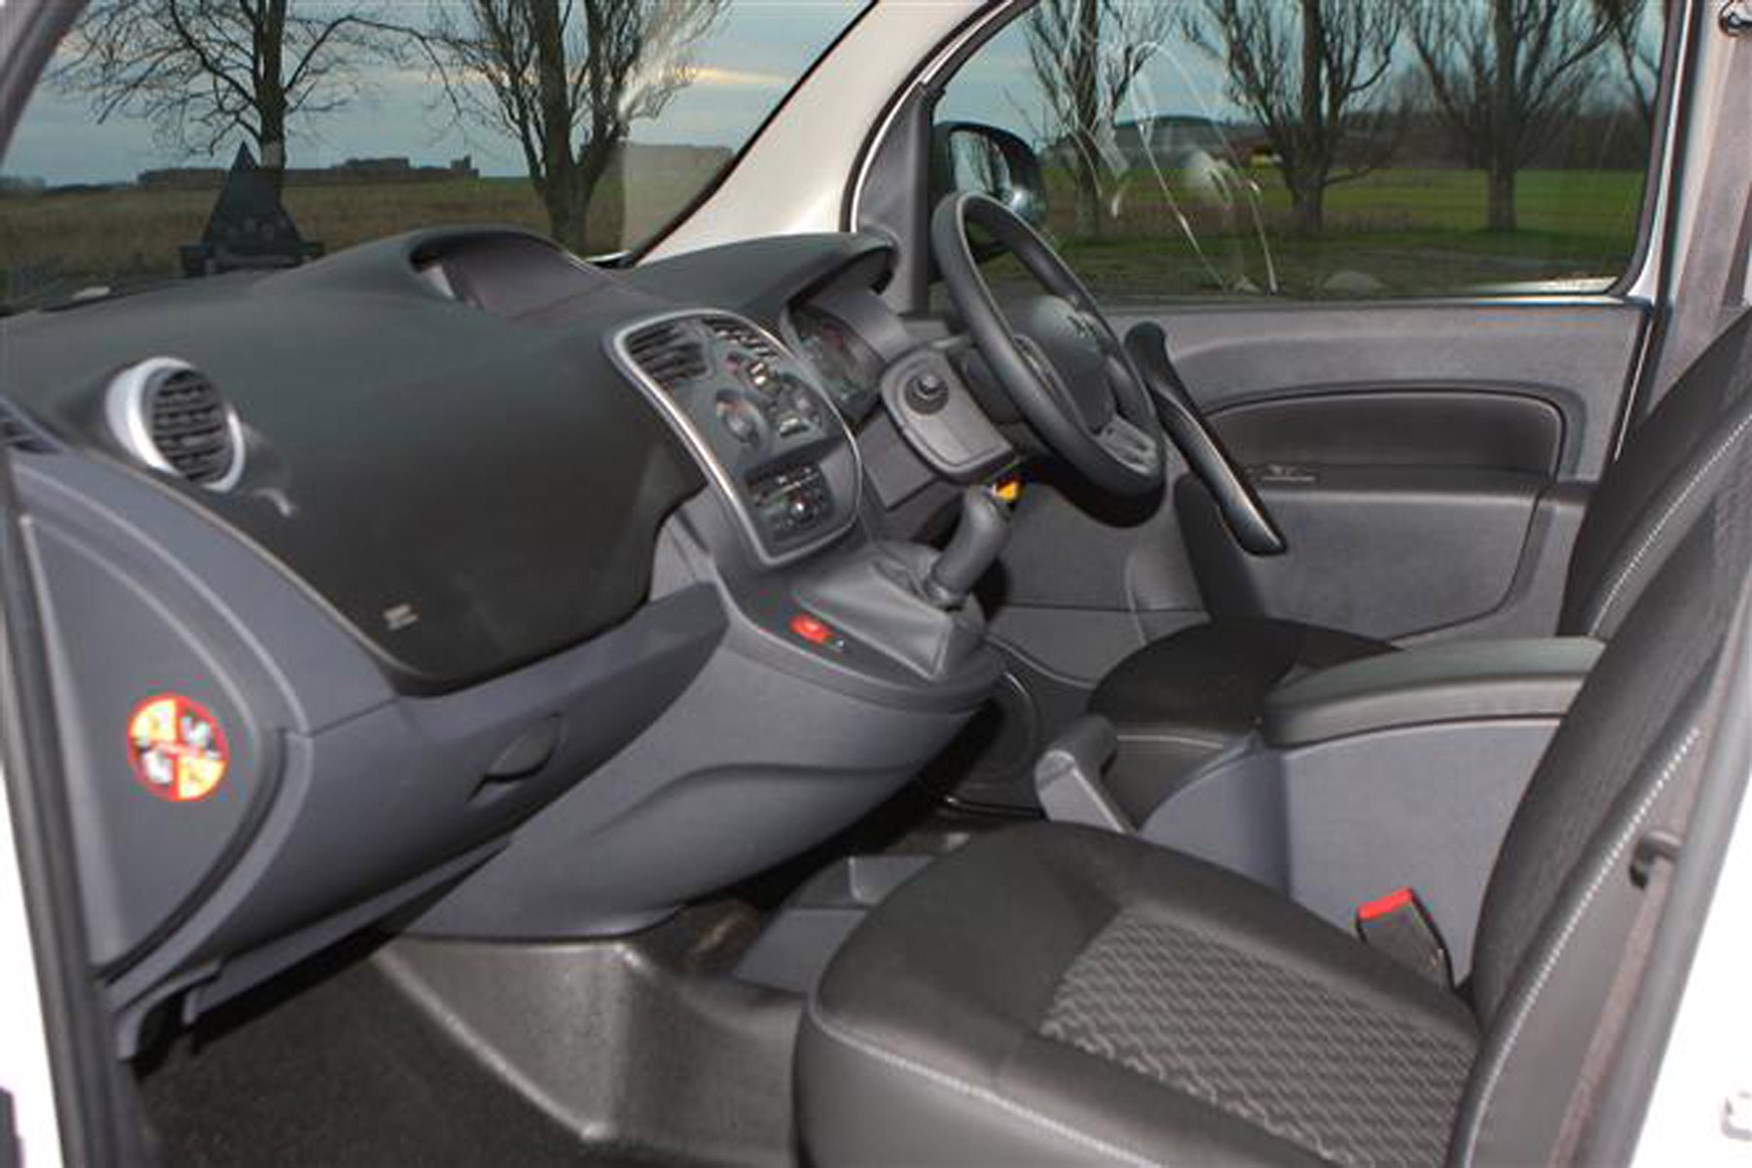 Renault Kangoo full review on Parkers Vans - interior